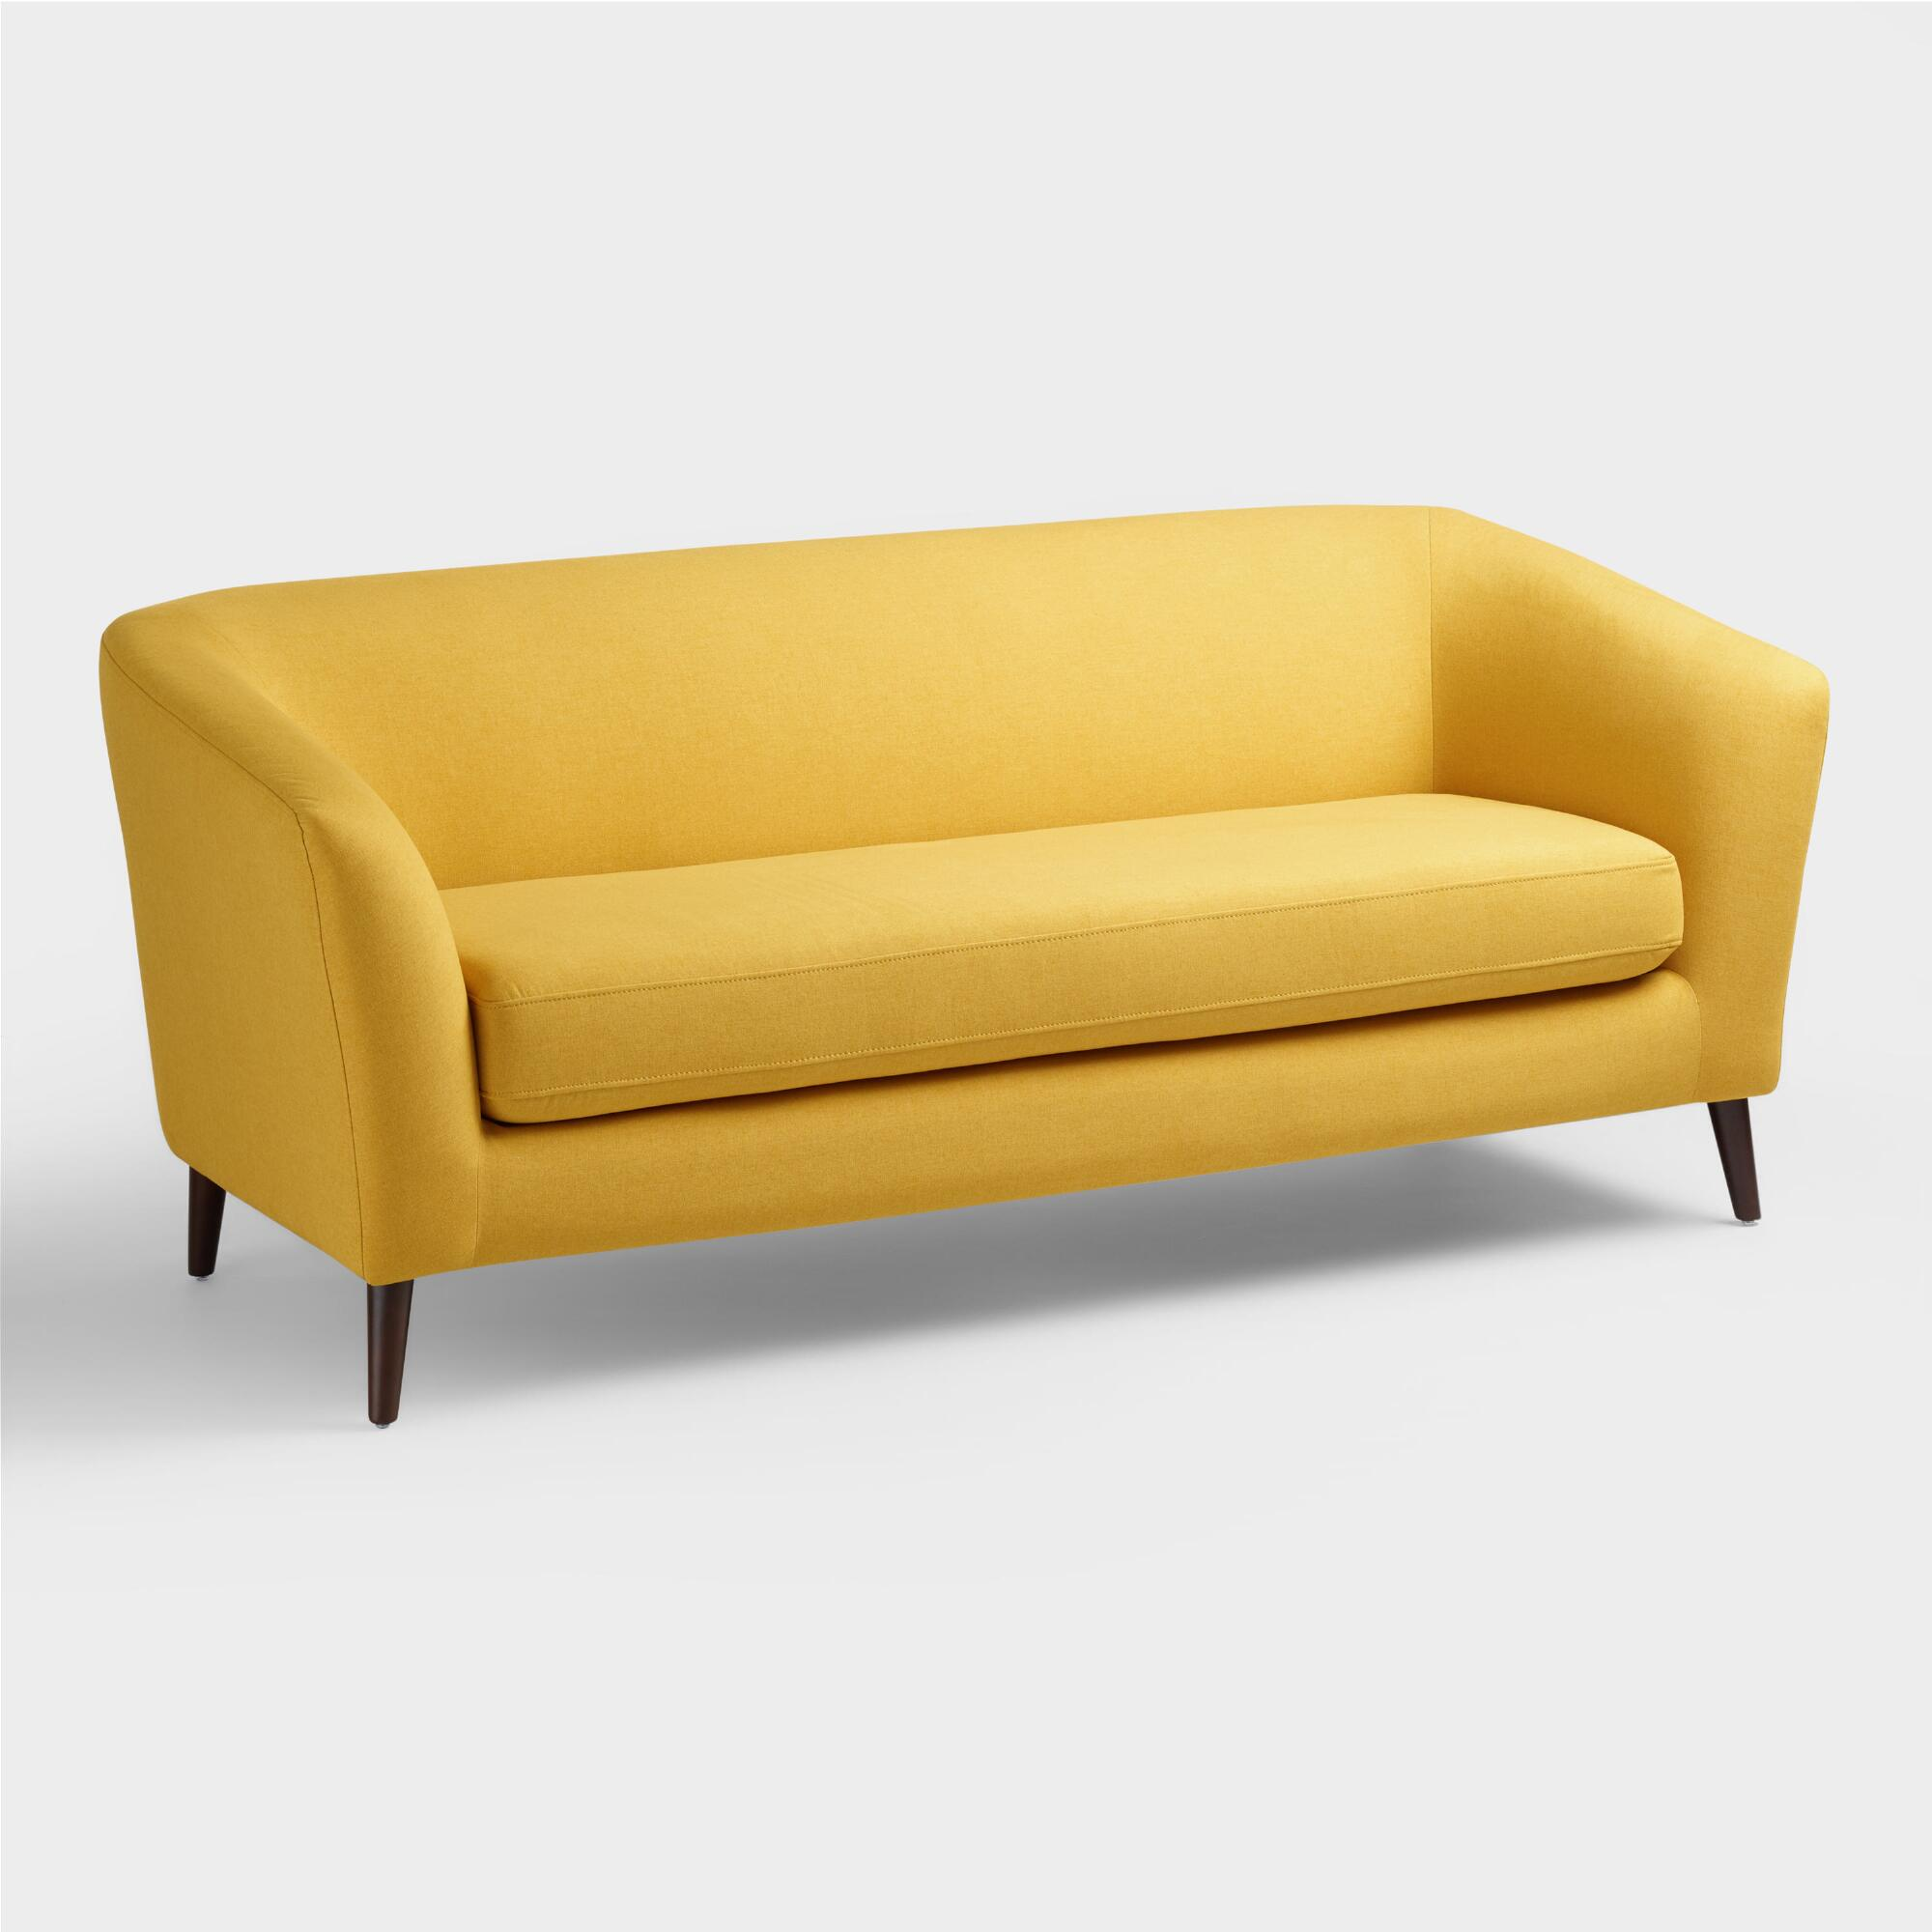 Design Small Sofas small space sofas daybeds world market french yellow marni sofa